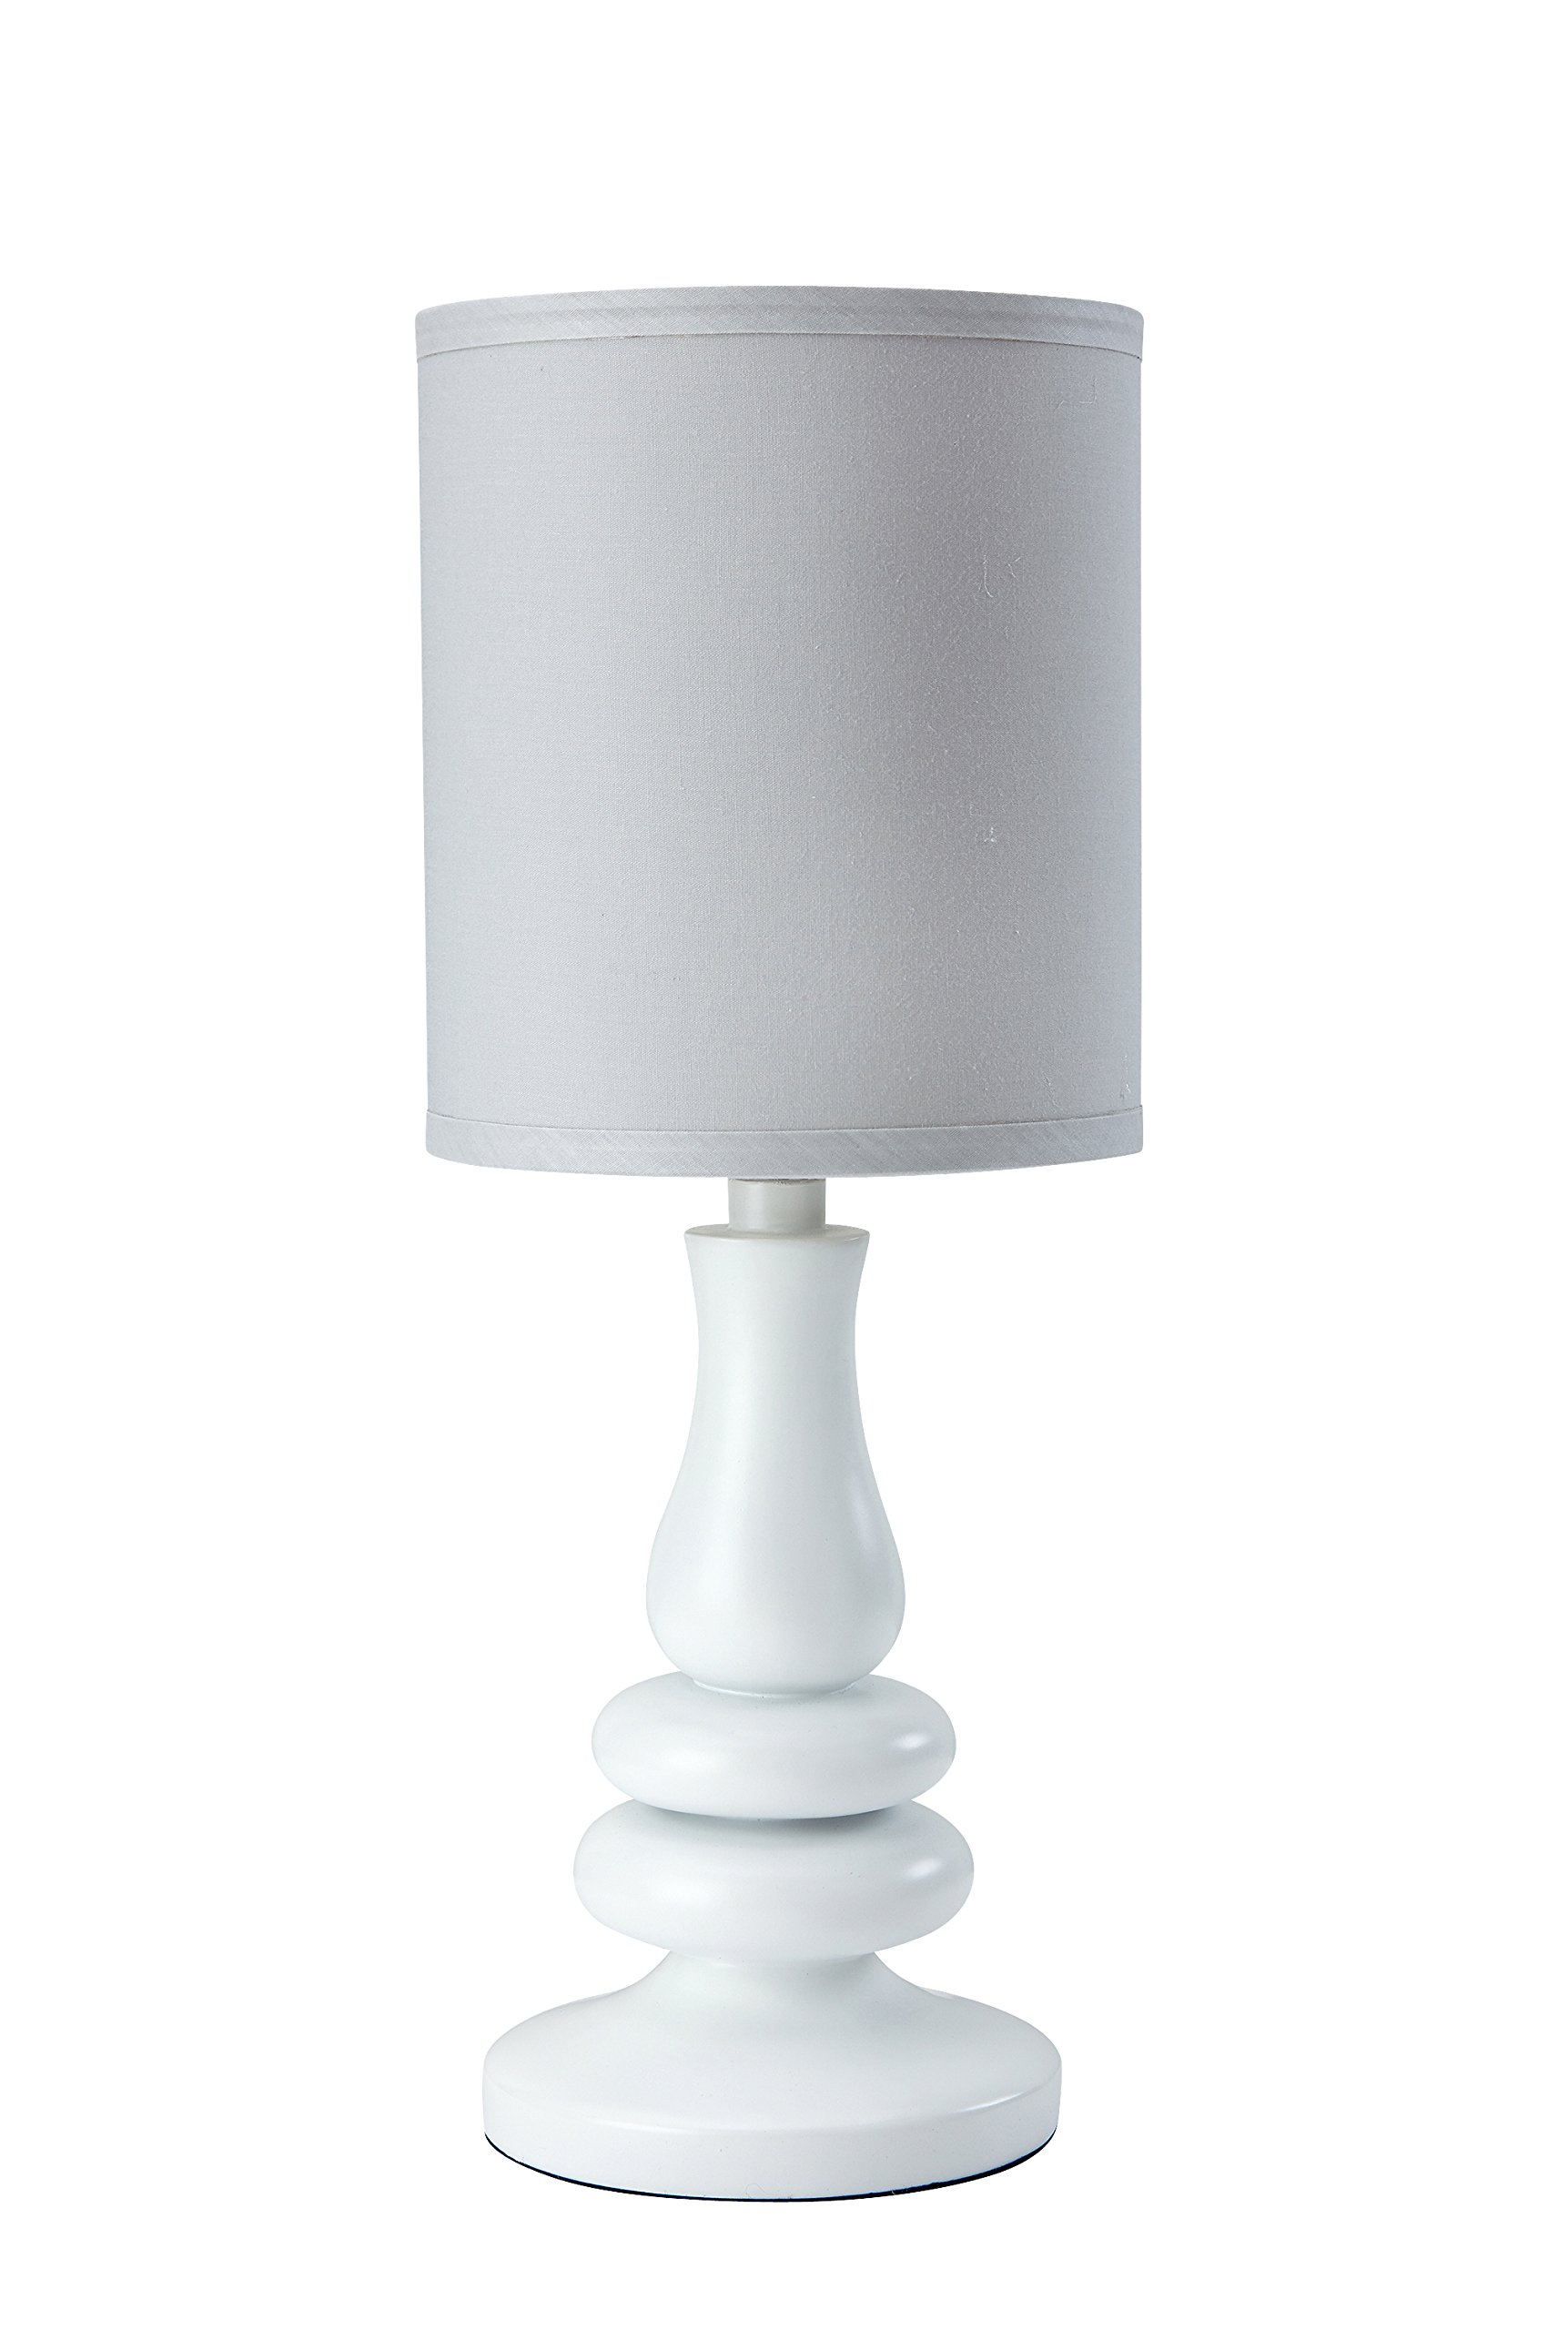 Little Love by NoJo Separates Collection Lamp and Shade, Grey/White by NoJo